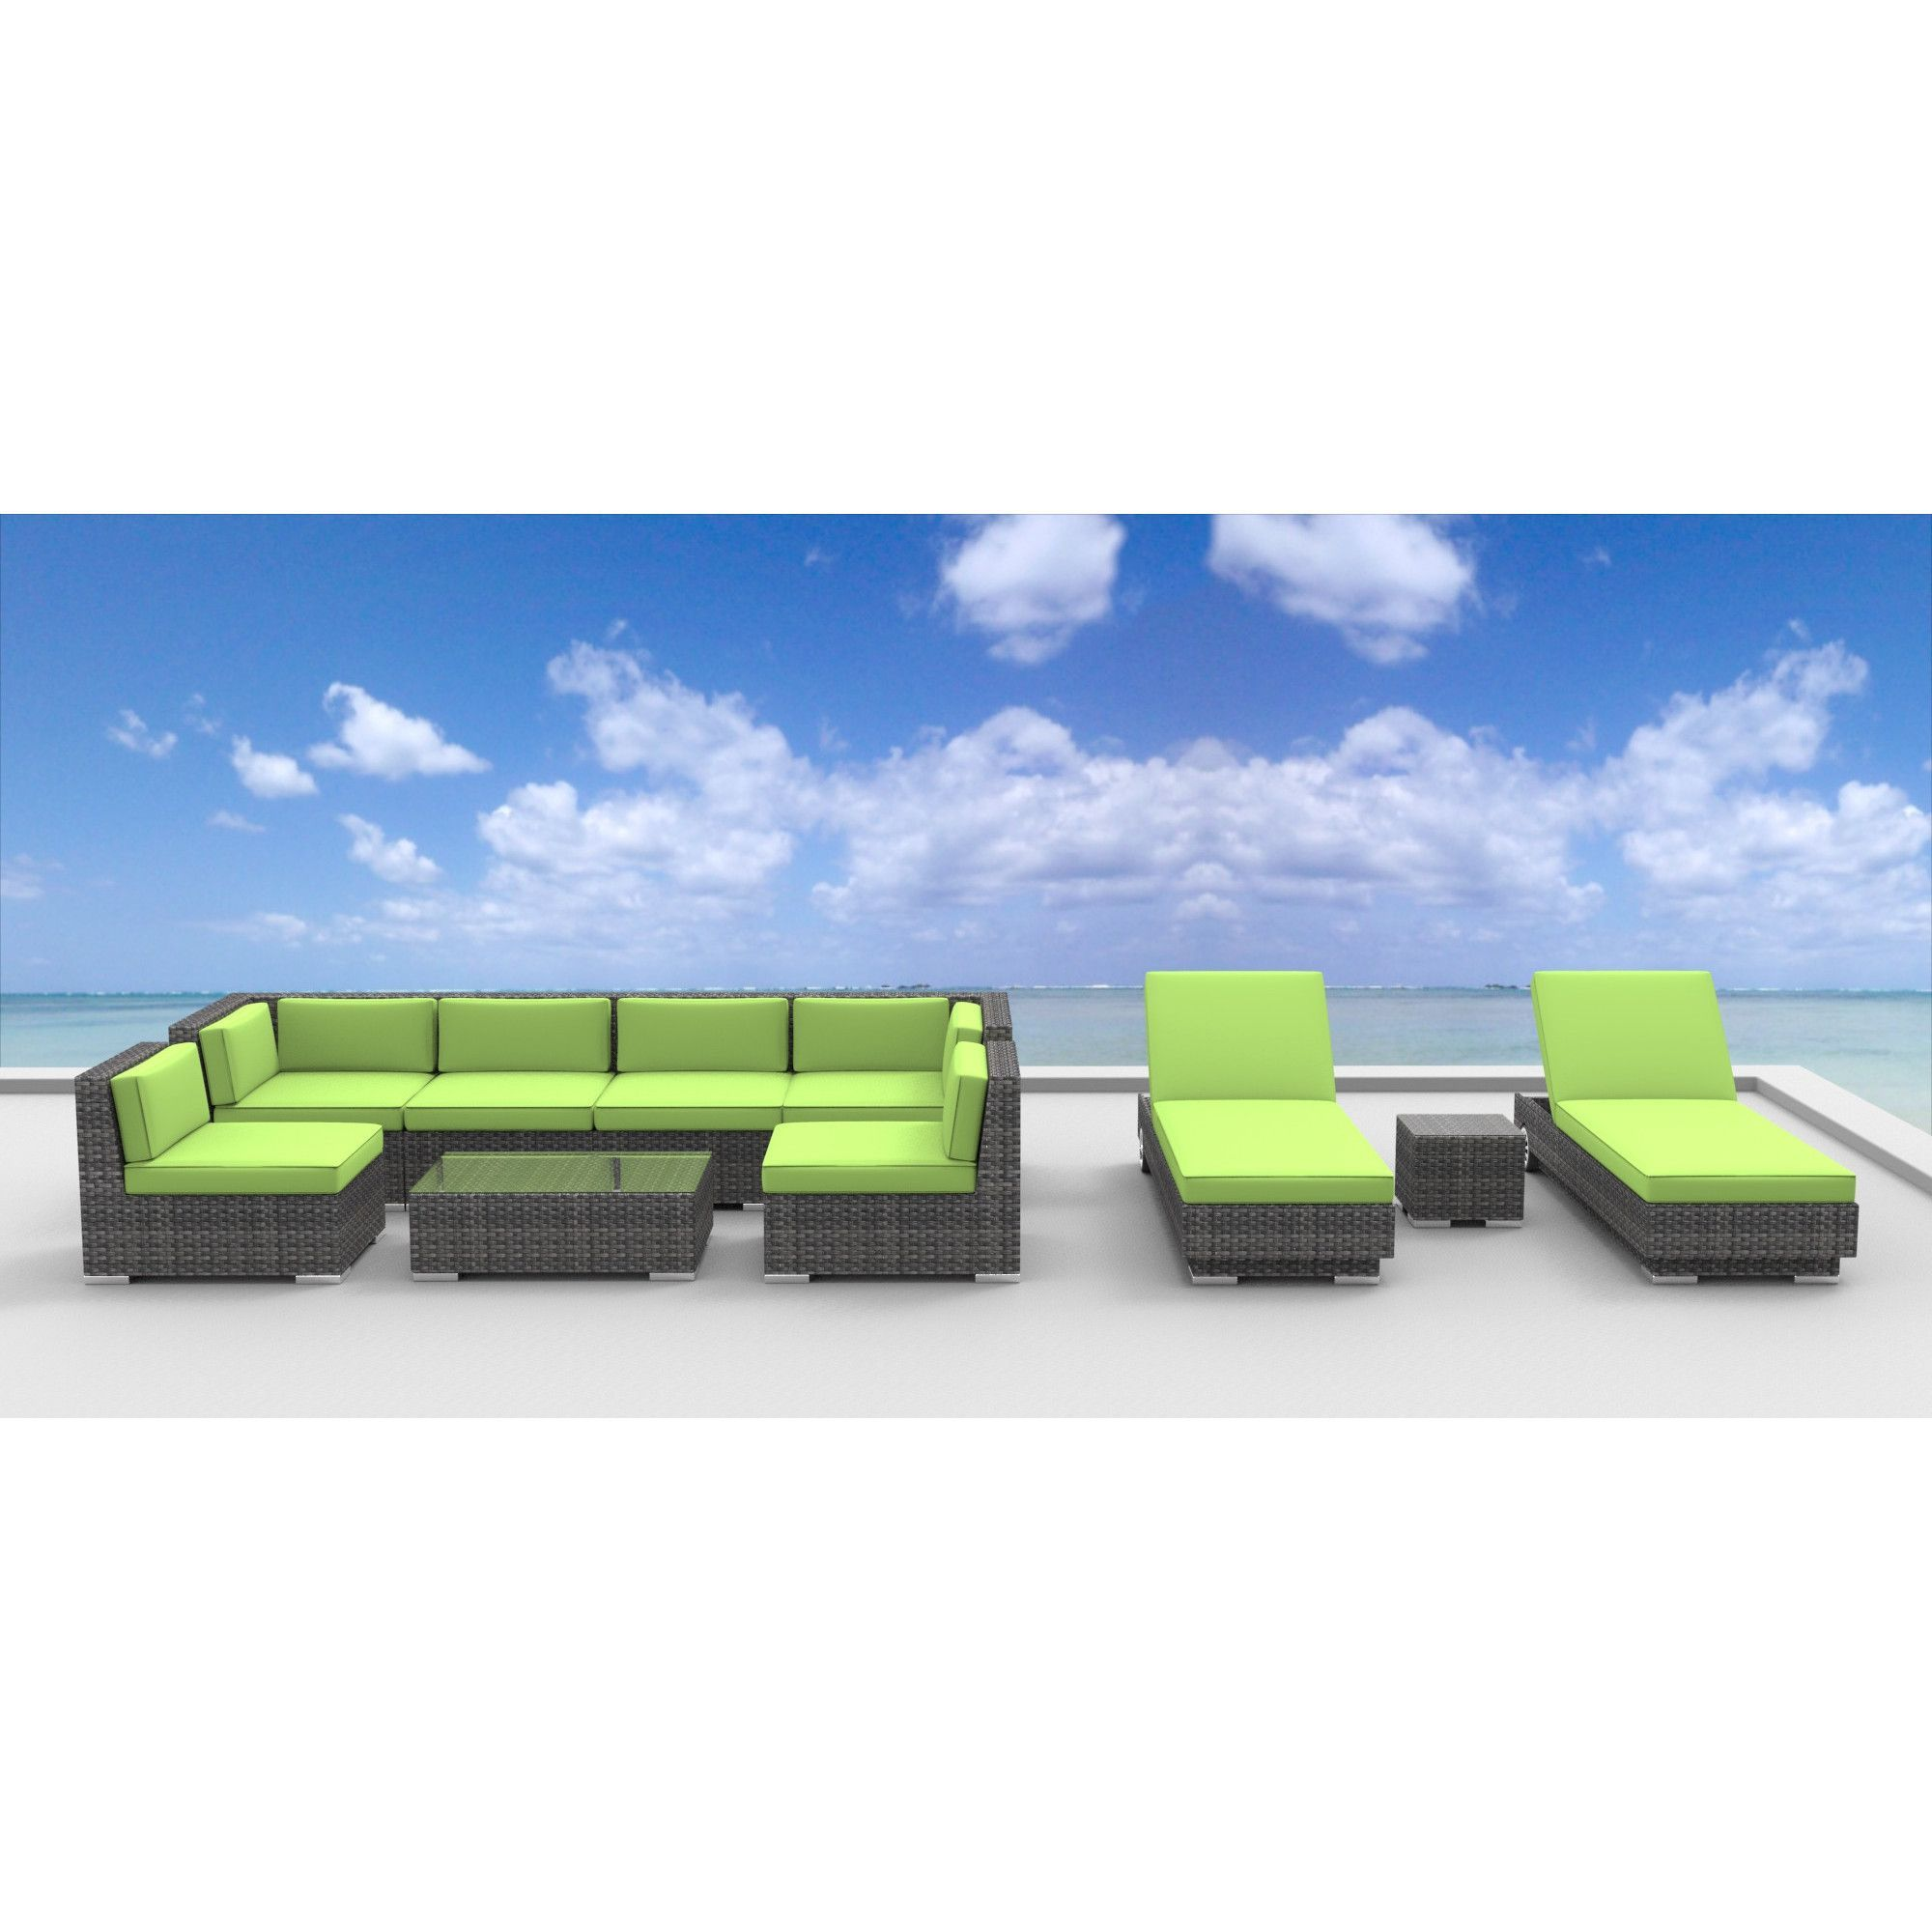 Urban Sofa Barneveld Urban Furnishing Ibiza Wicker Rattan 10 Piece Outdoor Sectional